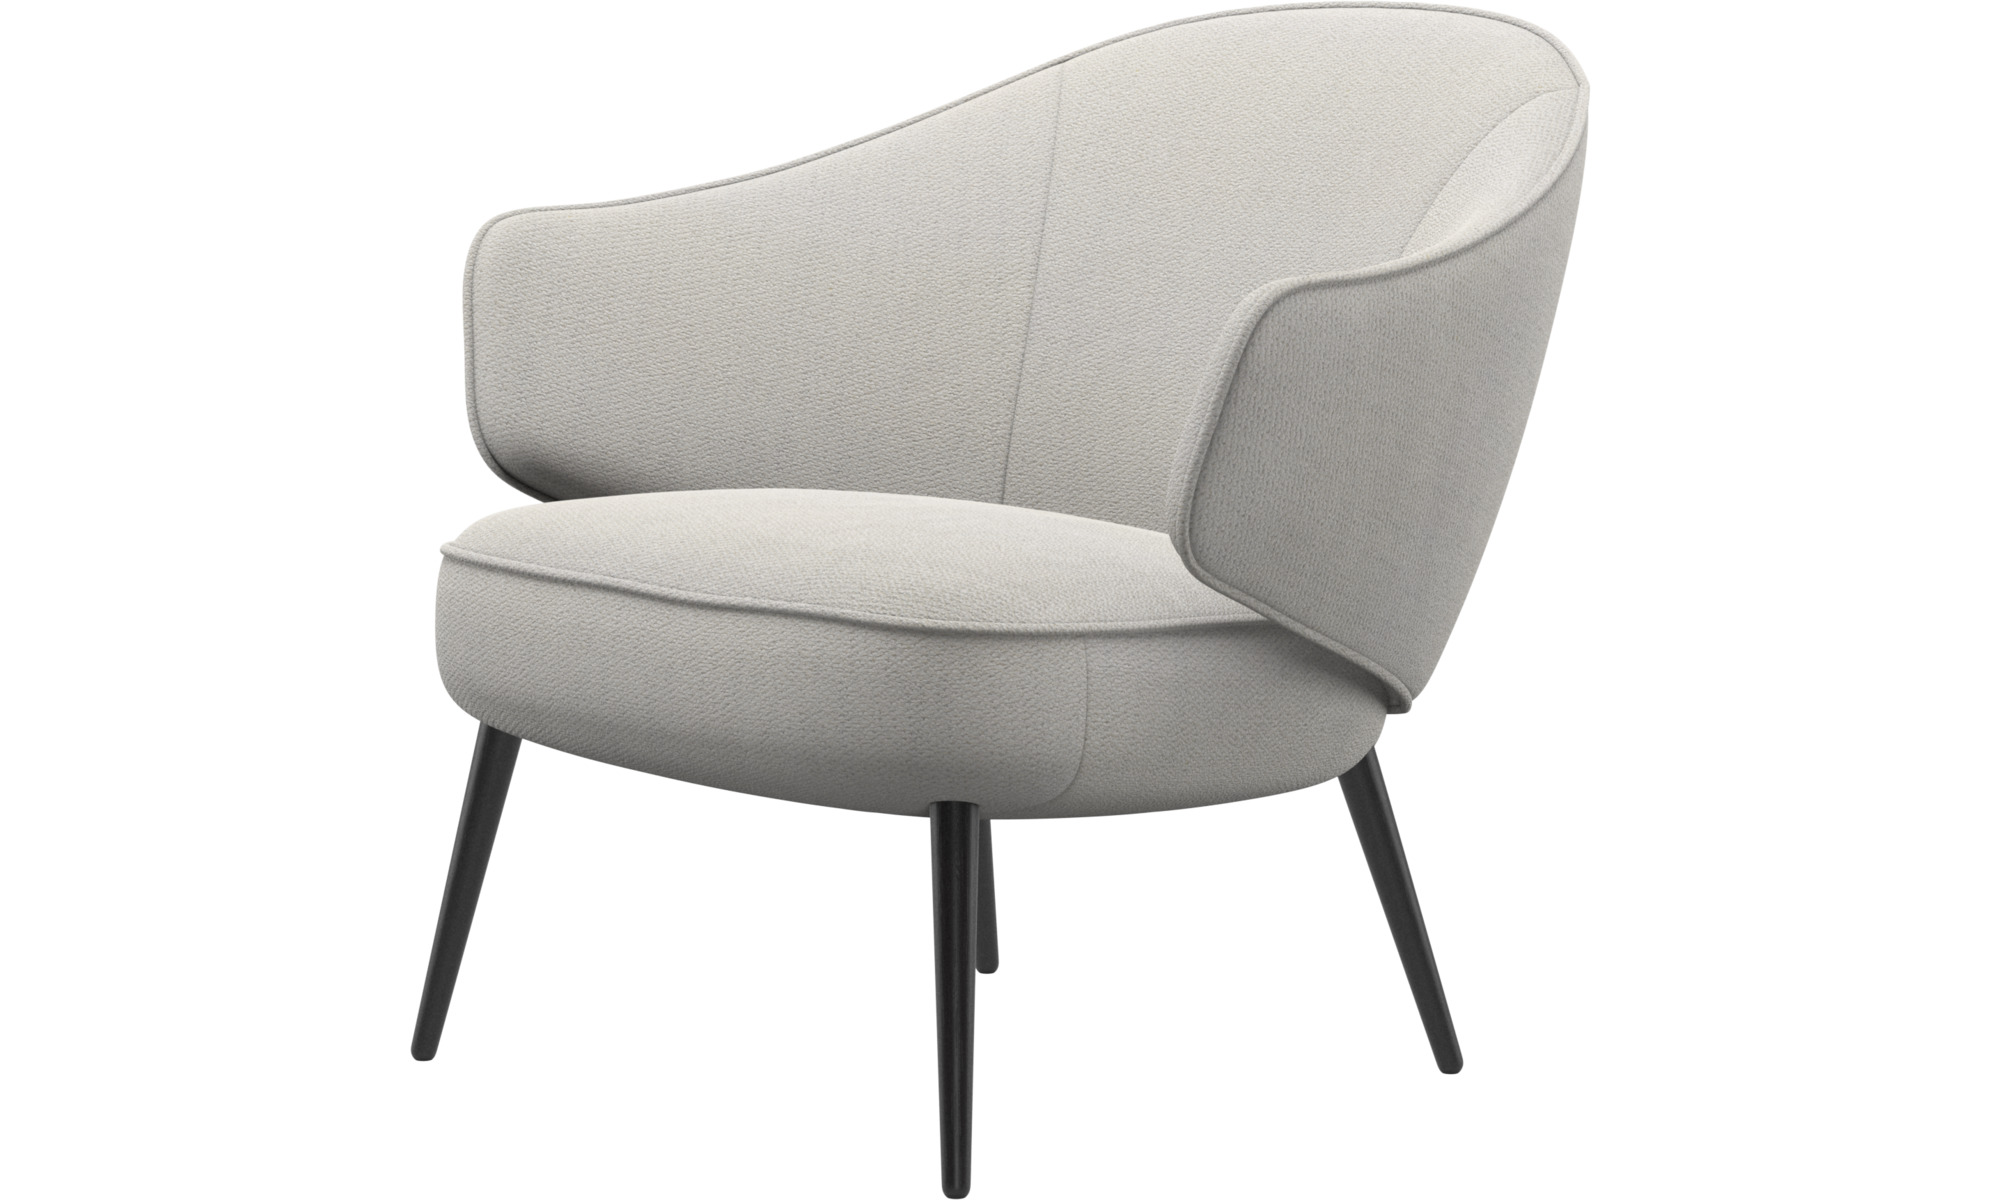 Armchairs - Charlotte chair - White - Fabric